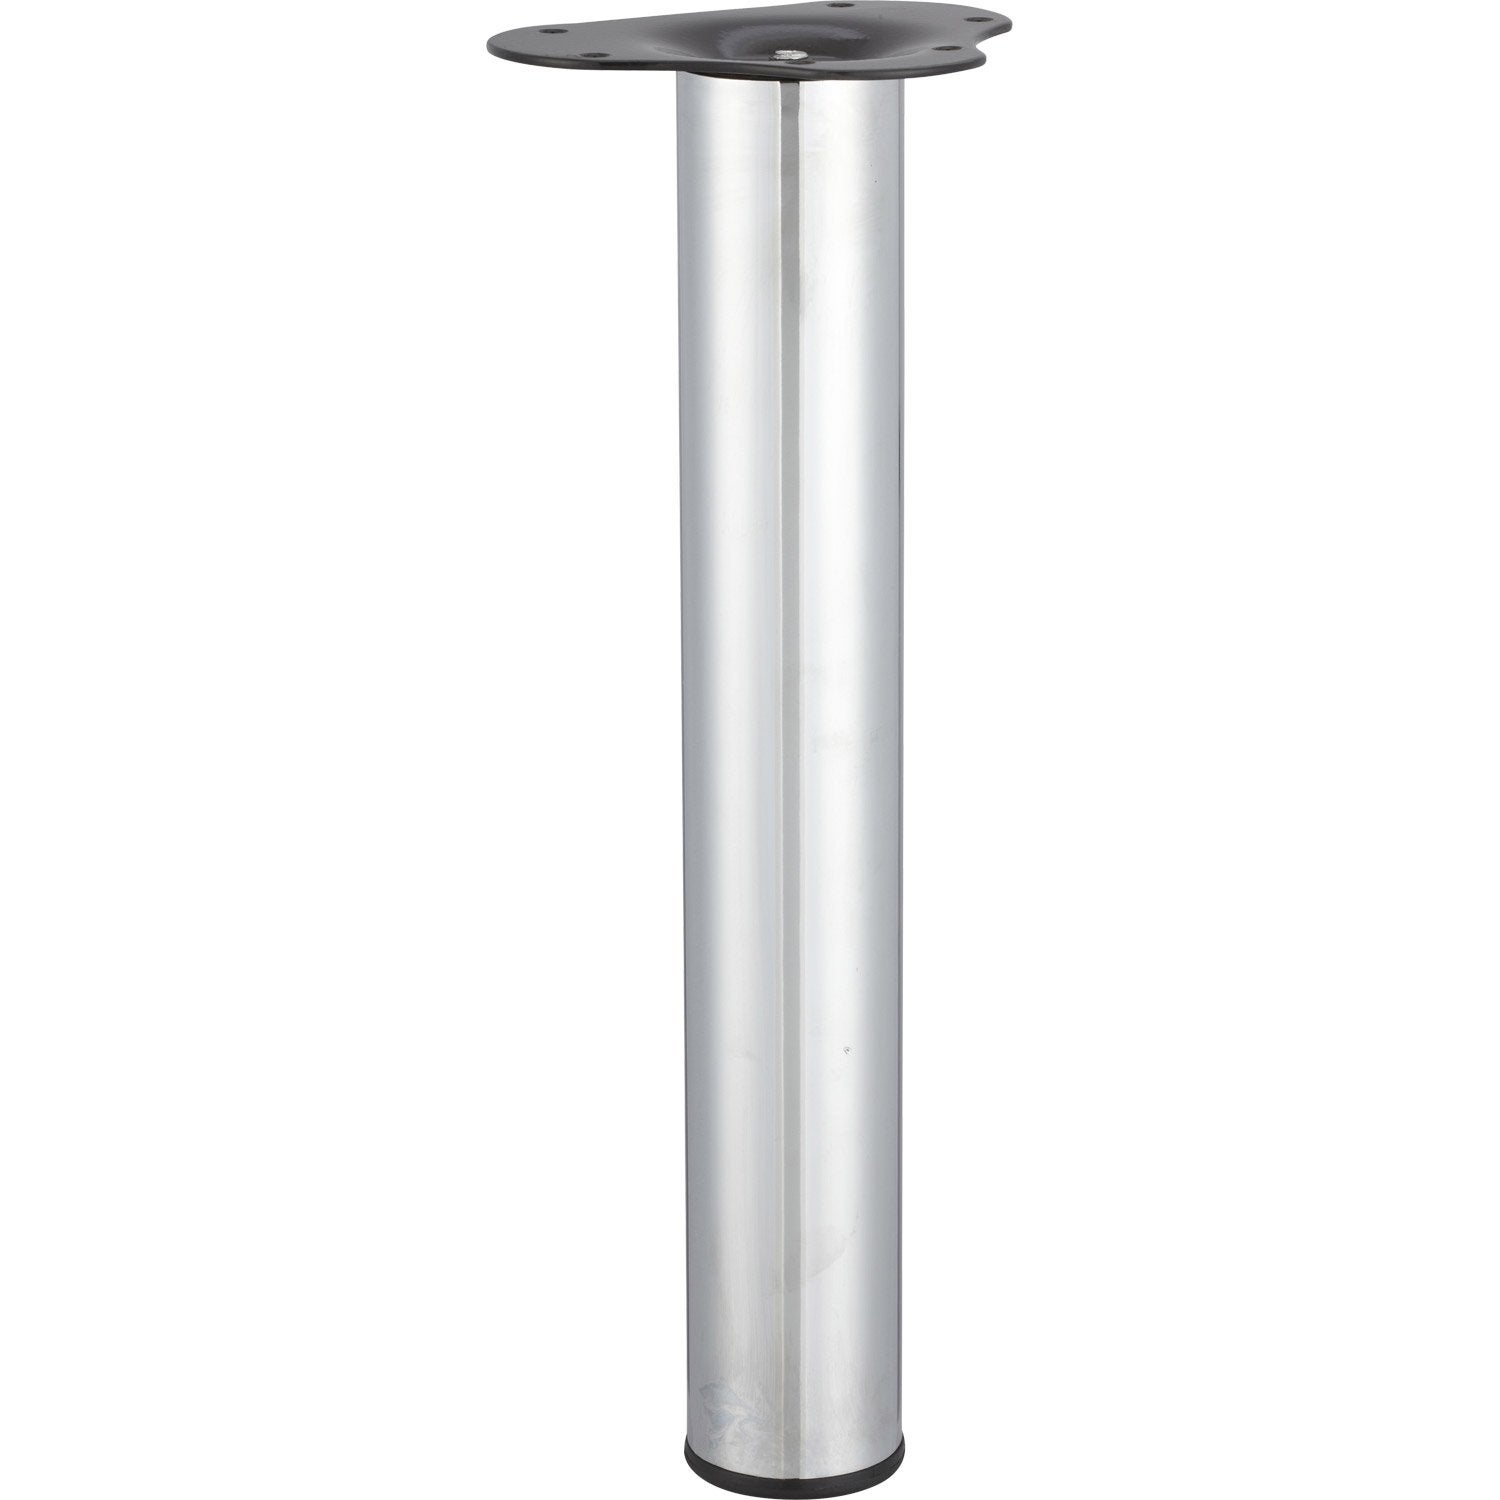 Pied de table basse cylindrique r glable acier chrom gris - Pied de table basse leroy merlin ...